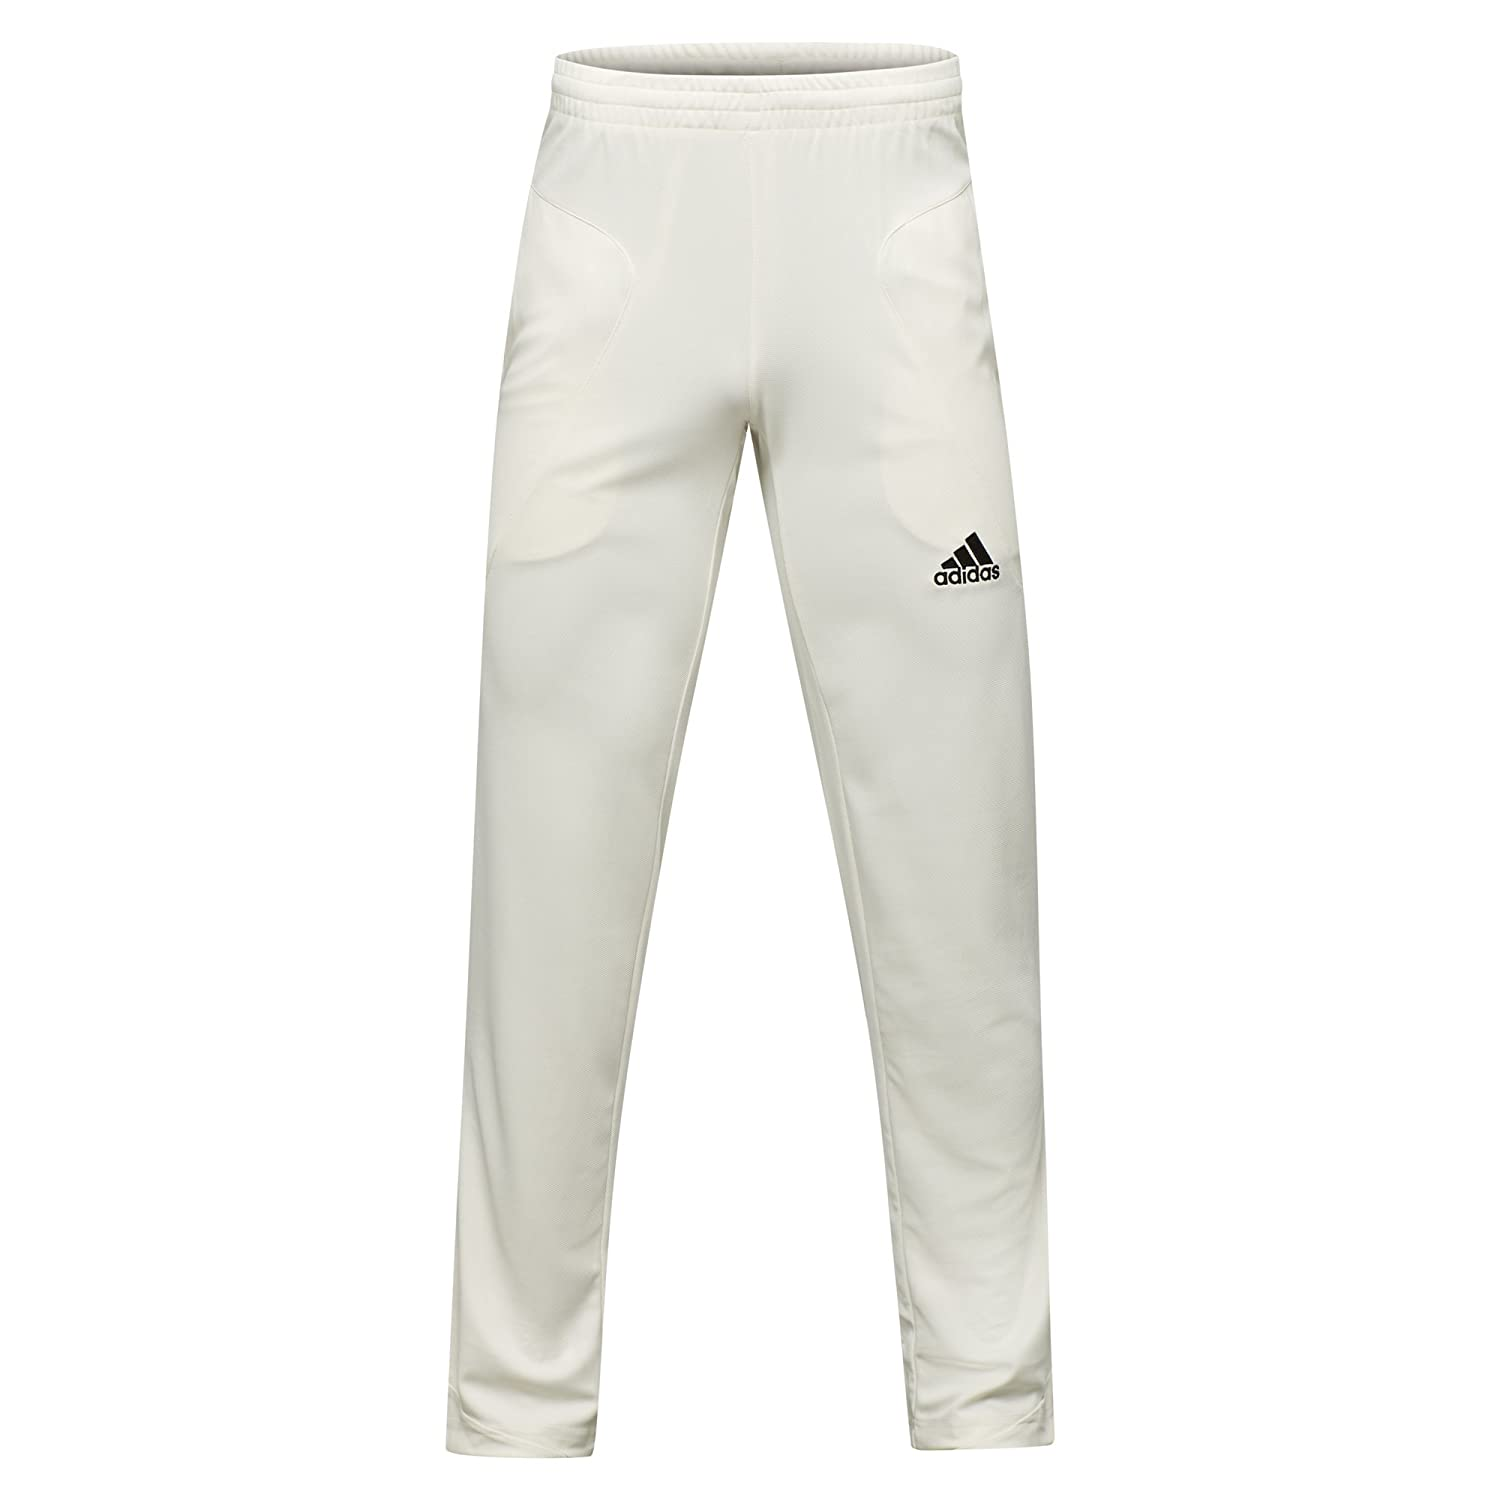 adidas Howzat Mens Cricket Whites Batting Bowling Pant Trouser White - 26' AJ451542